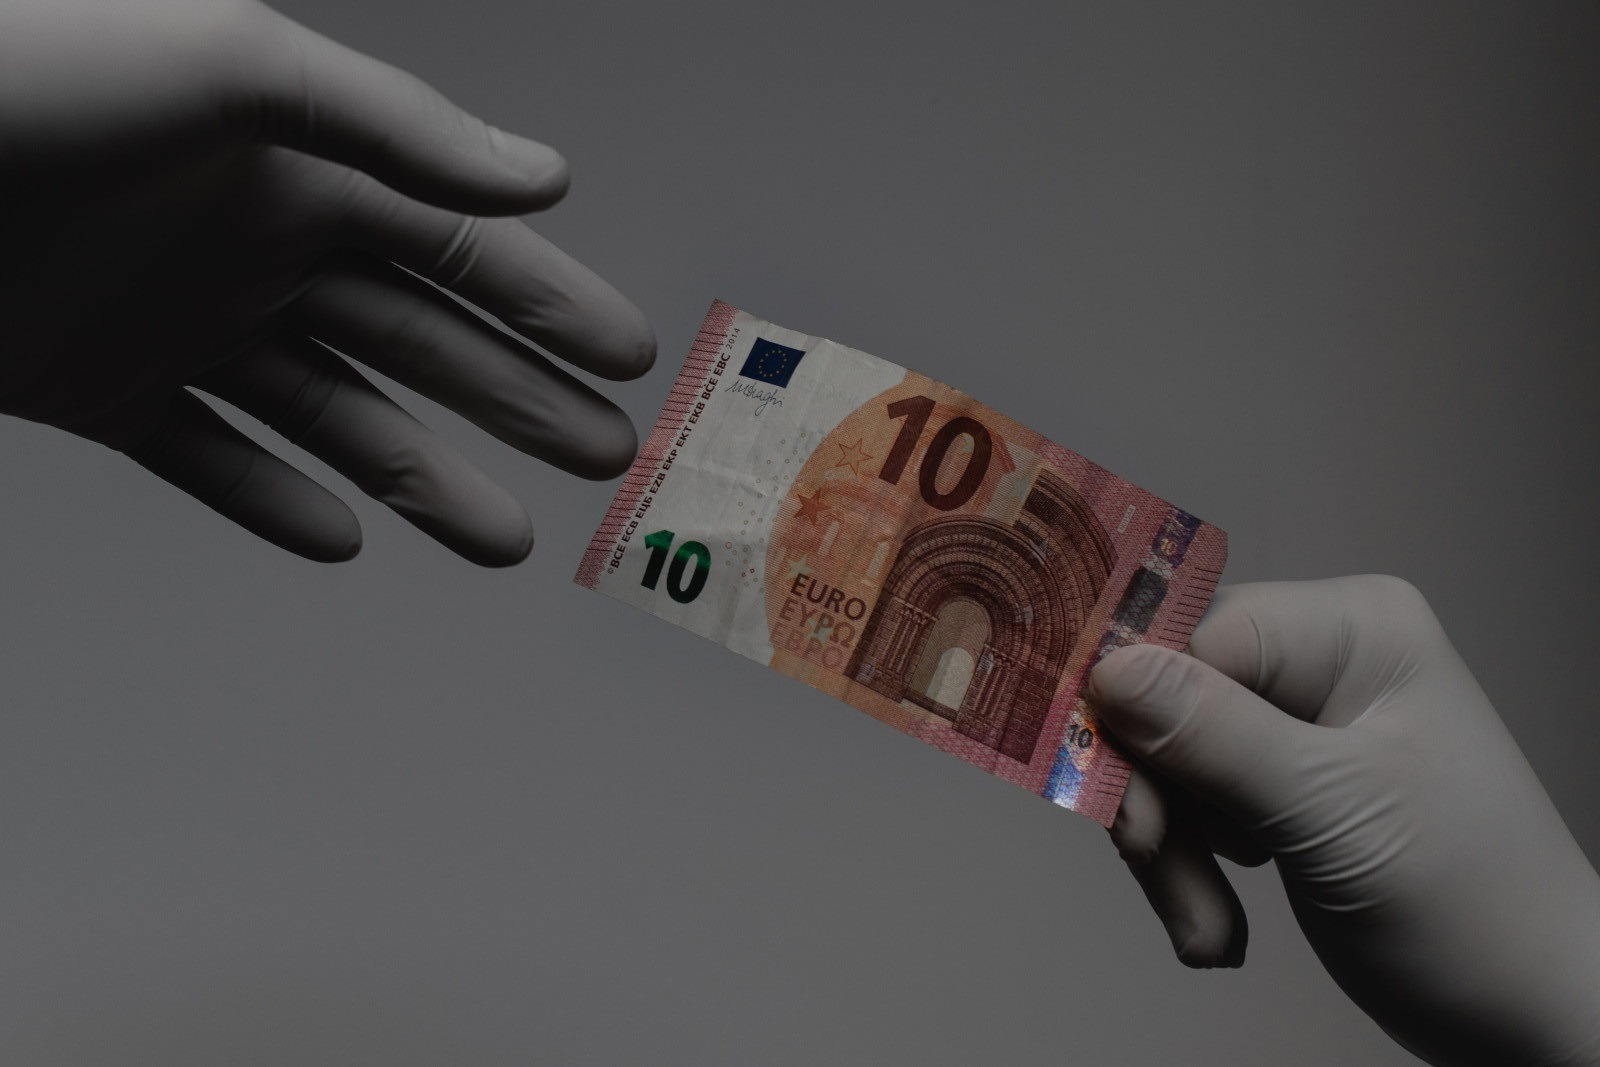 Accessing finance after COVID-19 - people handling money with gloves